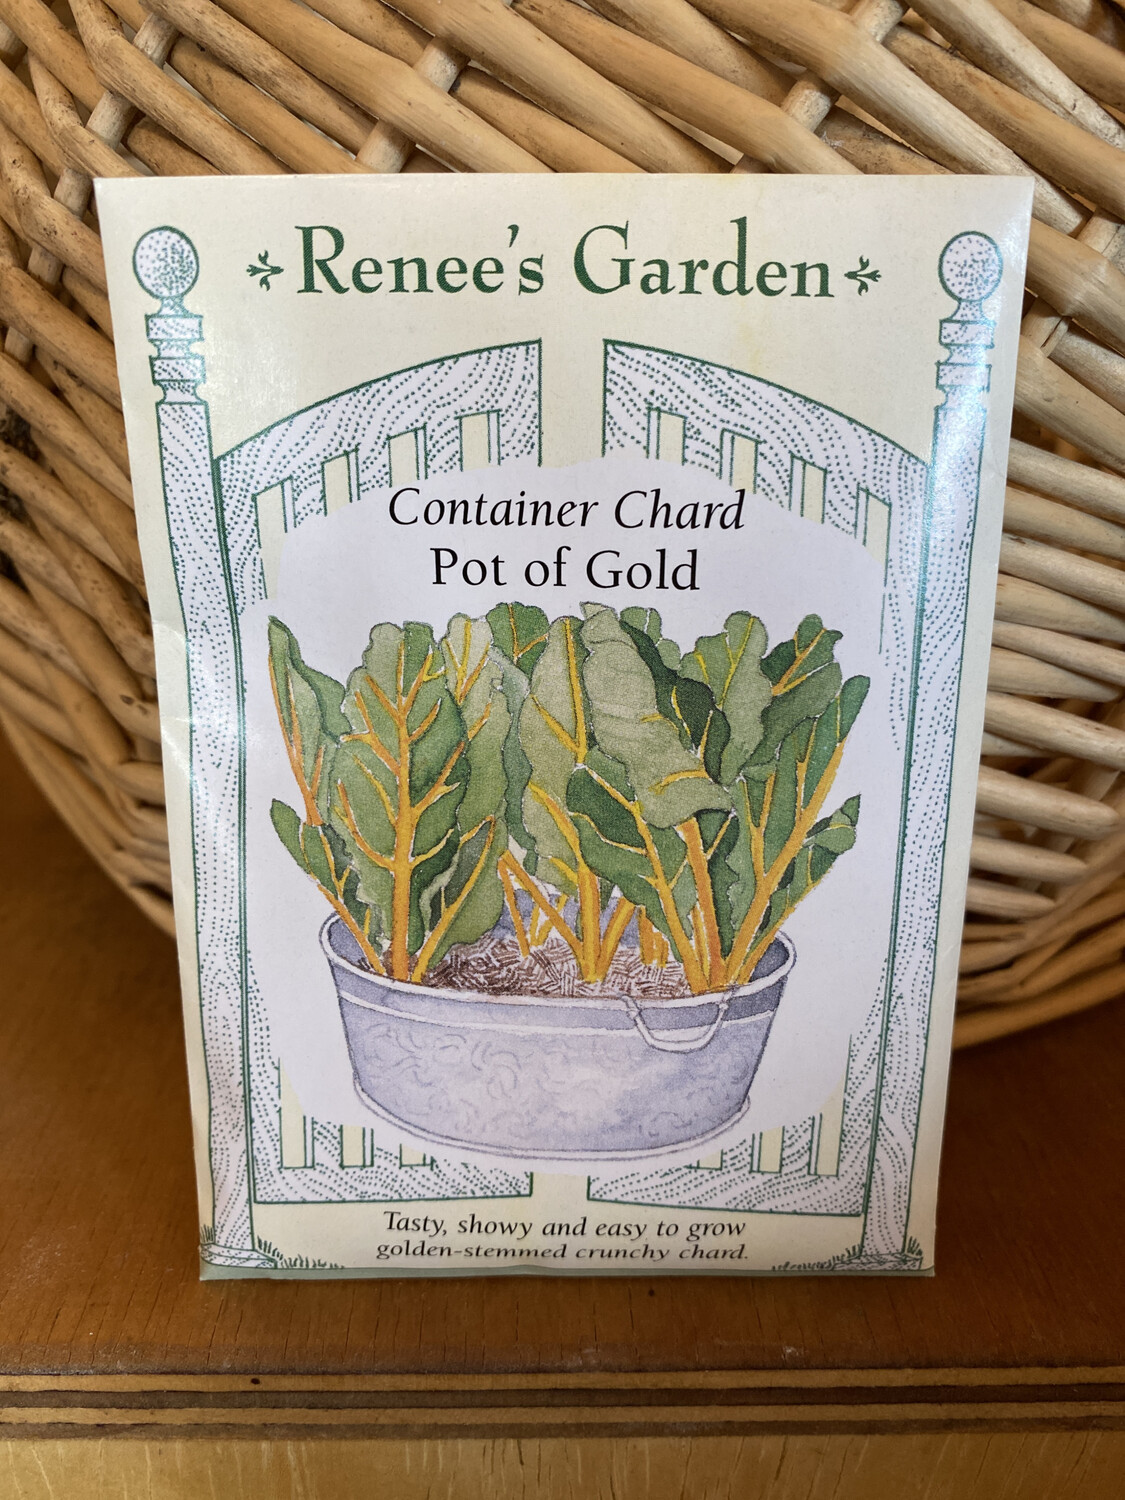 Container Chard Pot of Gold | Renee's Garden Seed Pack | Past Year's Seeds | Reduced Price